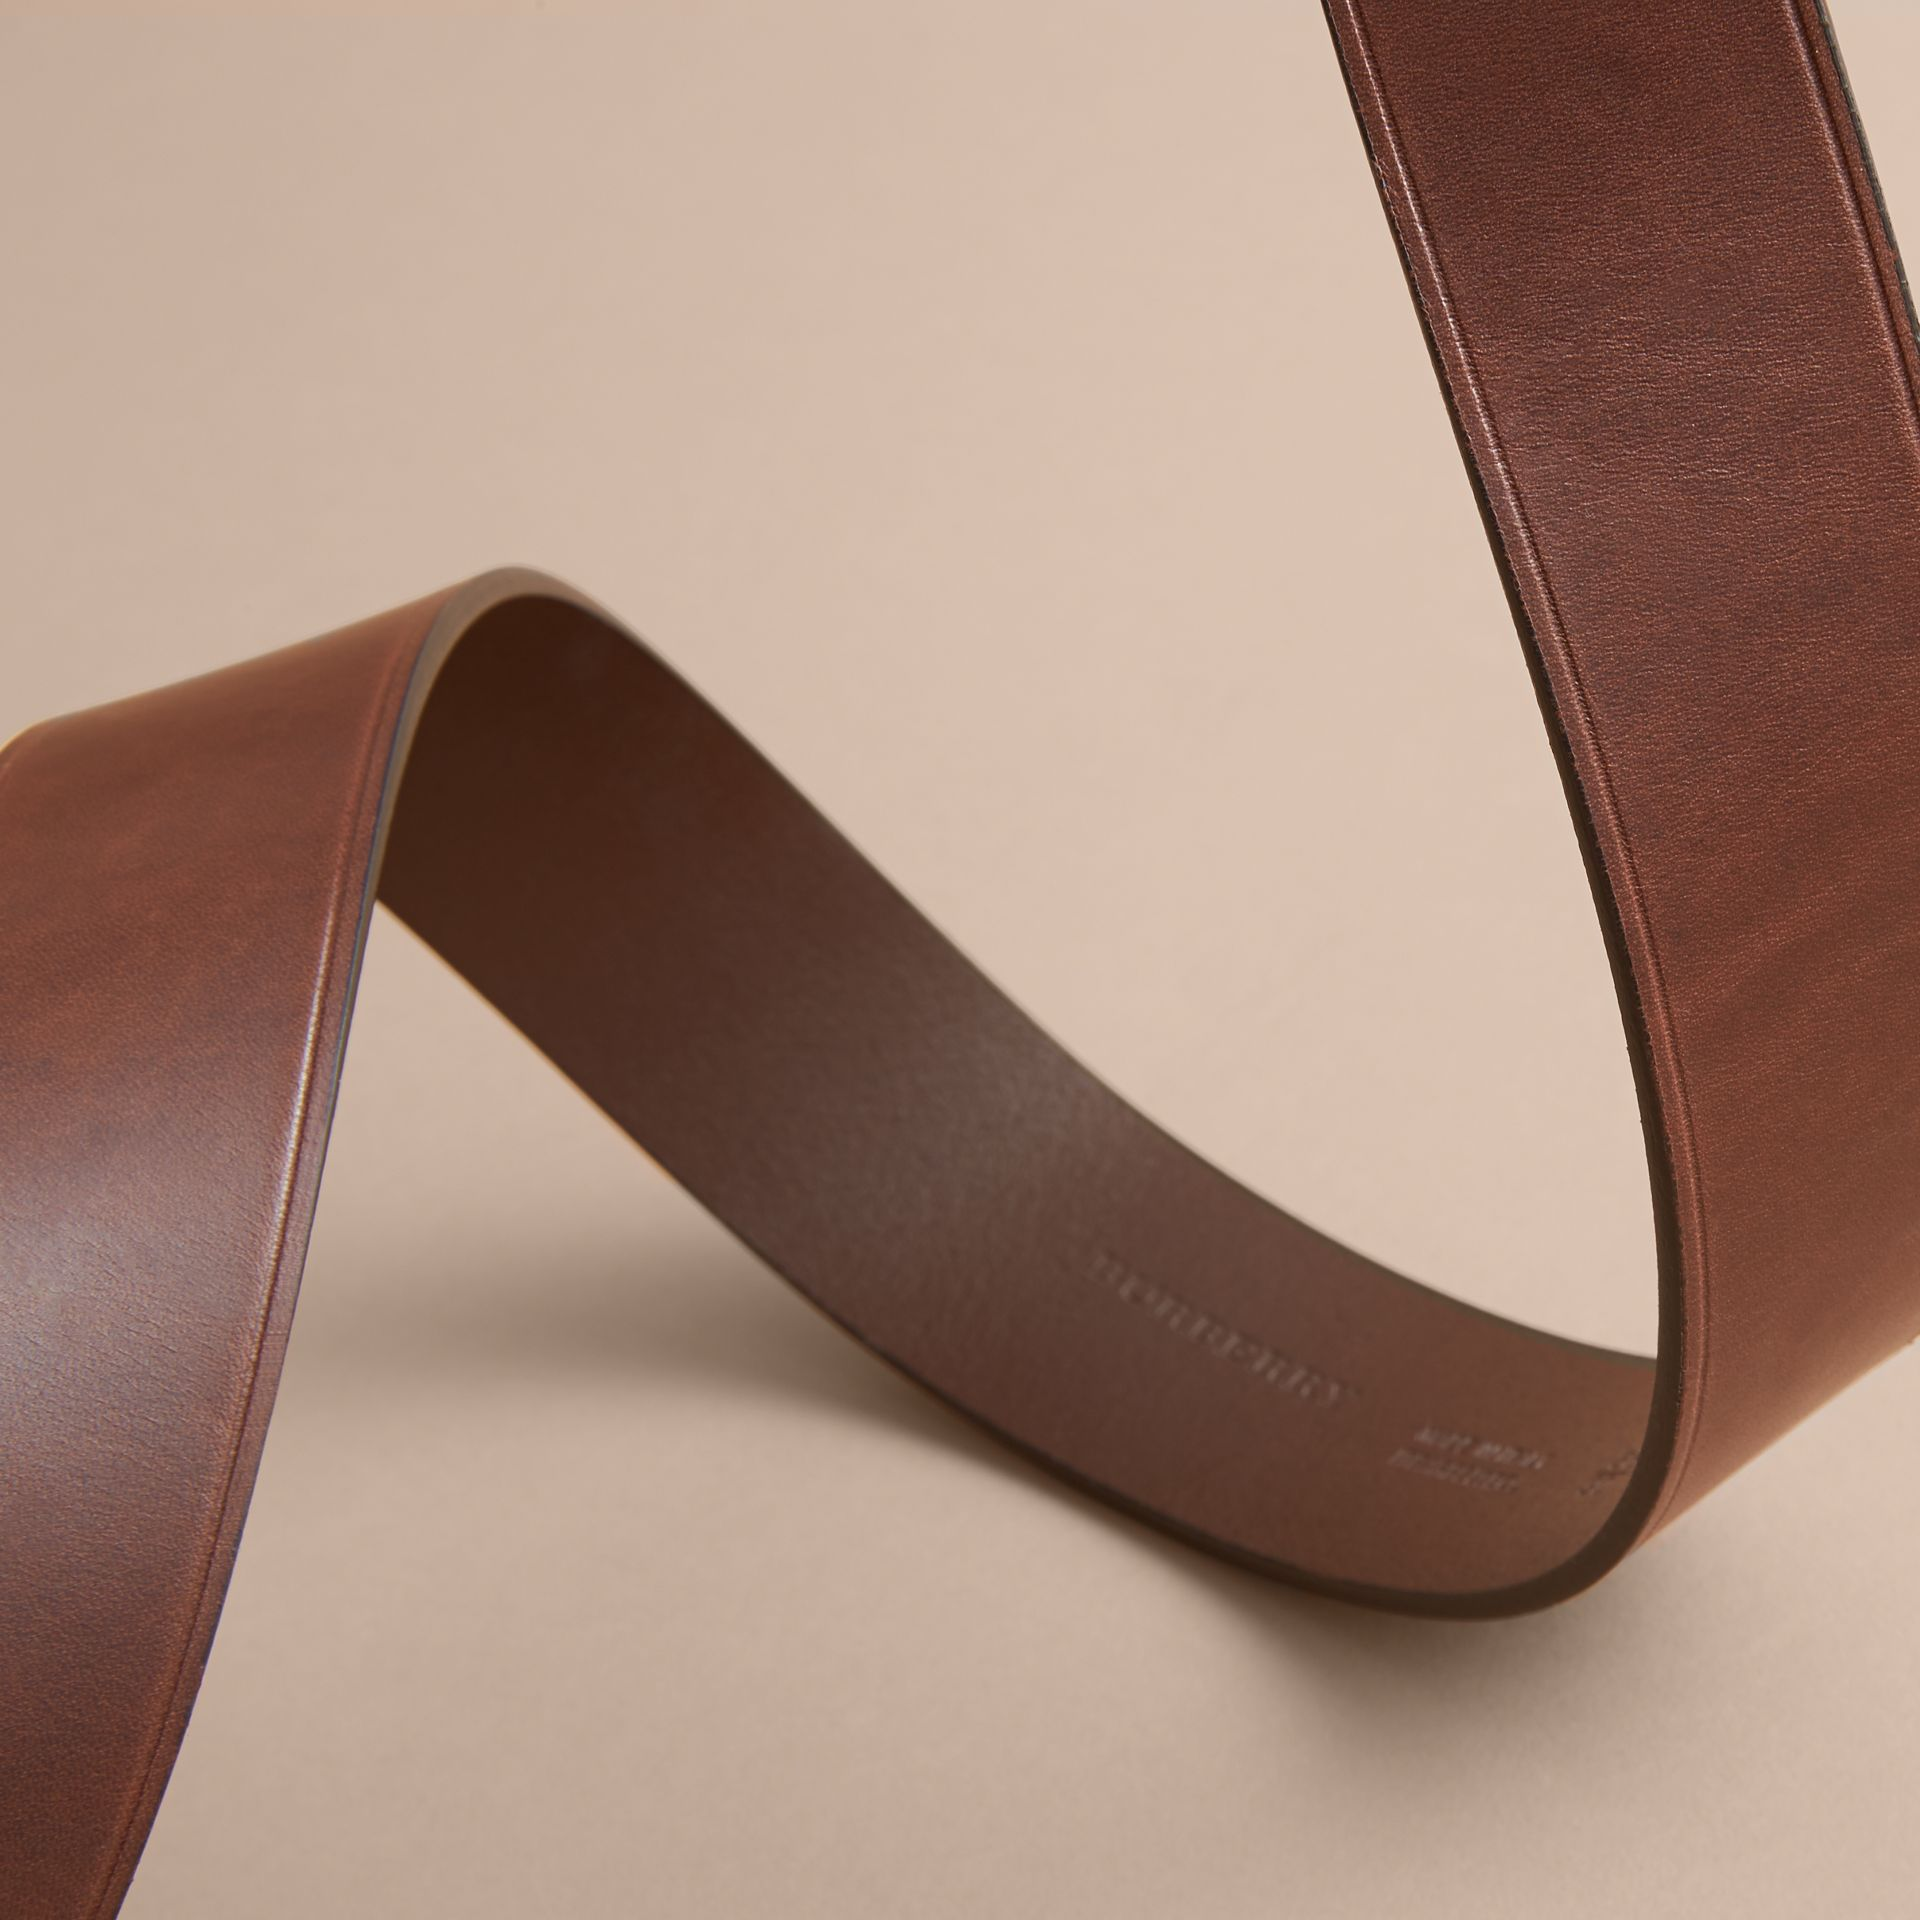 Brass Buckle Leather Belt in Auburn - Men | Burberry Hong Kong - gallery image 4